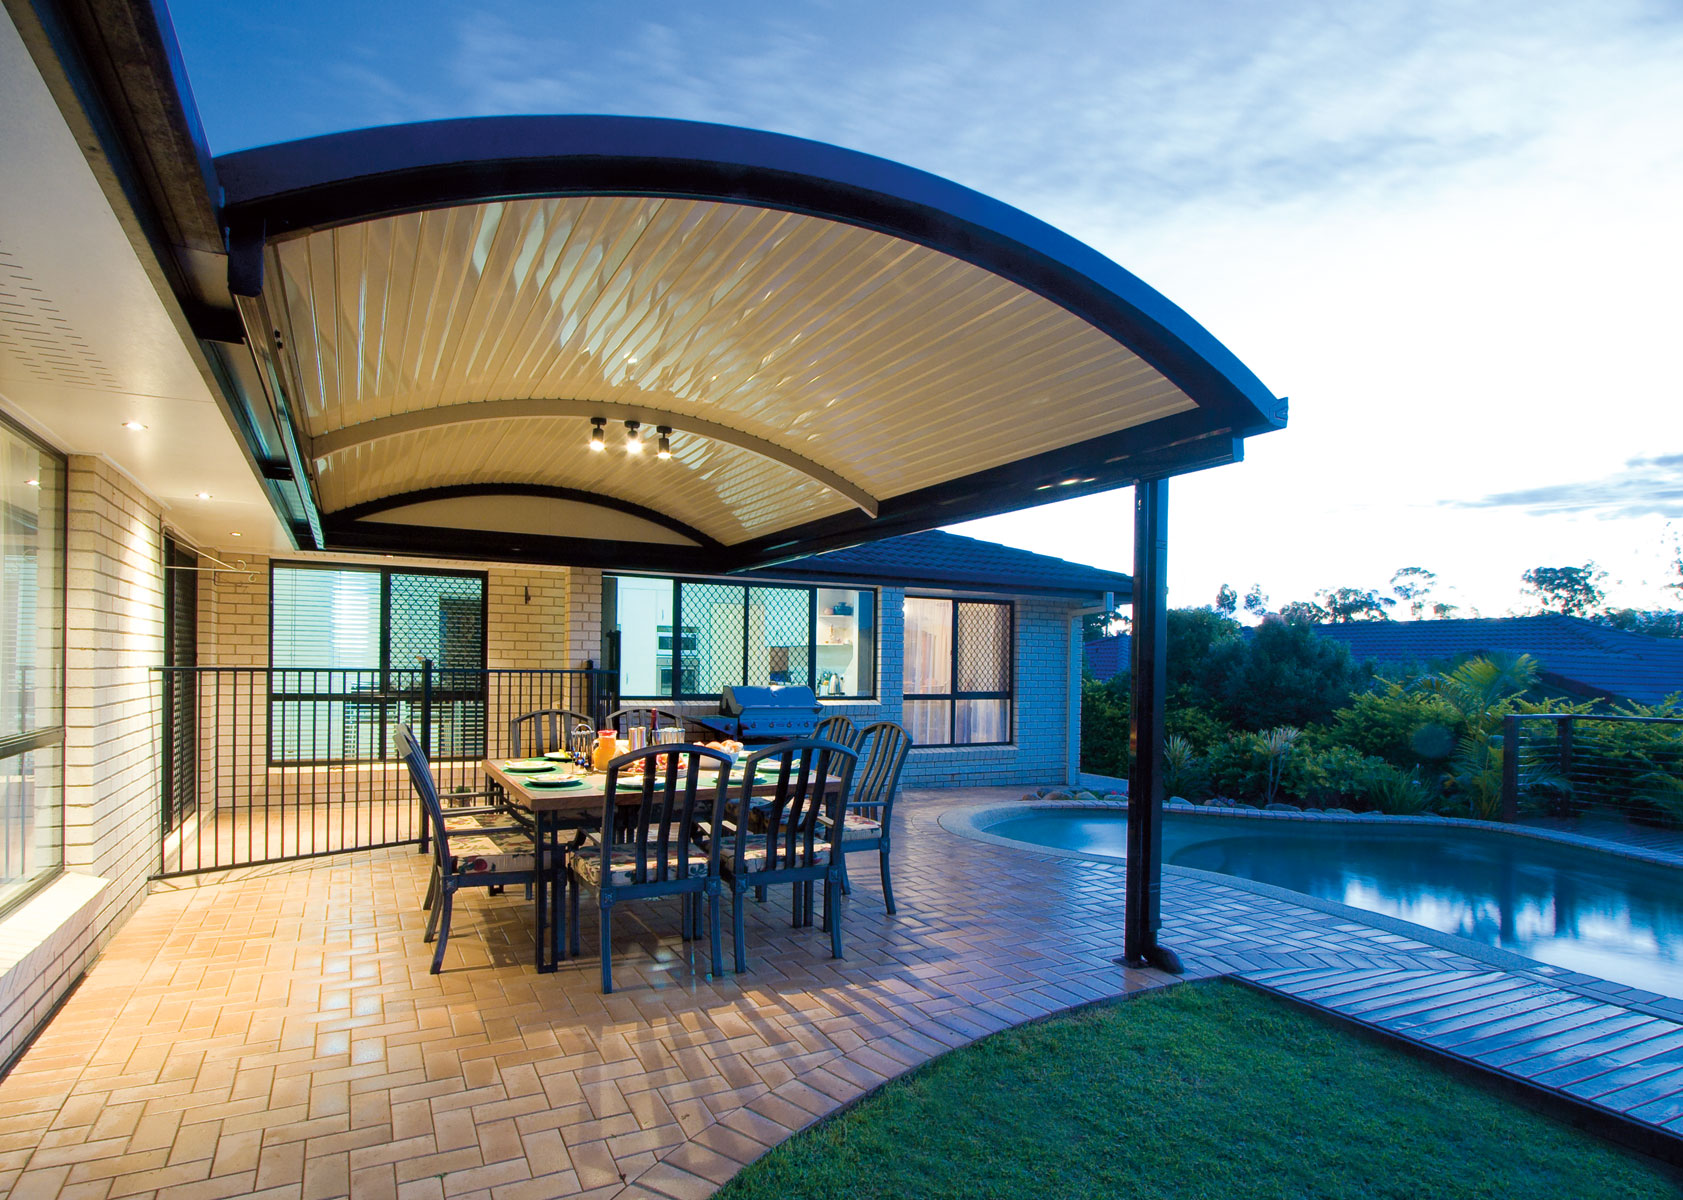 Patio with curved roofs - Stratco Outback Curved Roof Patio on Curved Patio Ideas id=26654